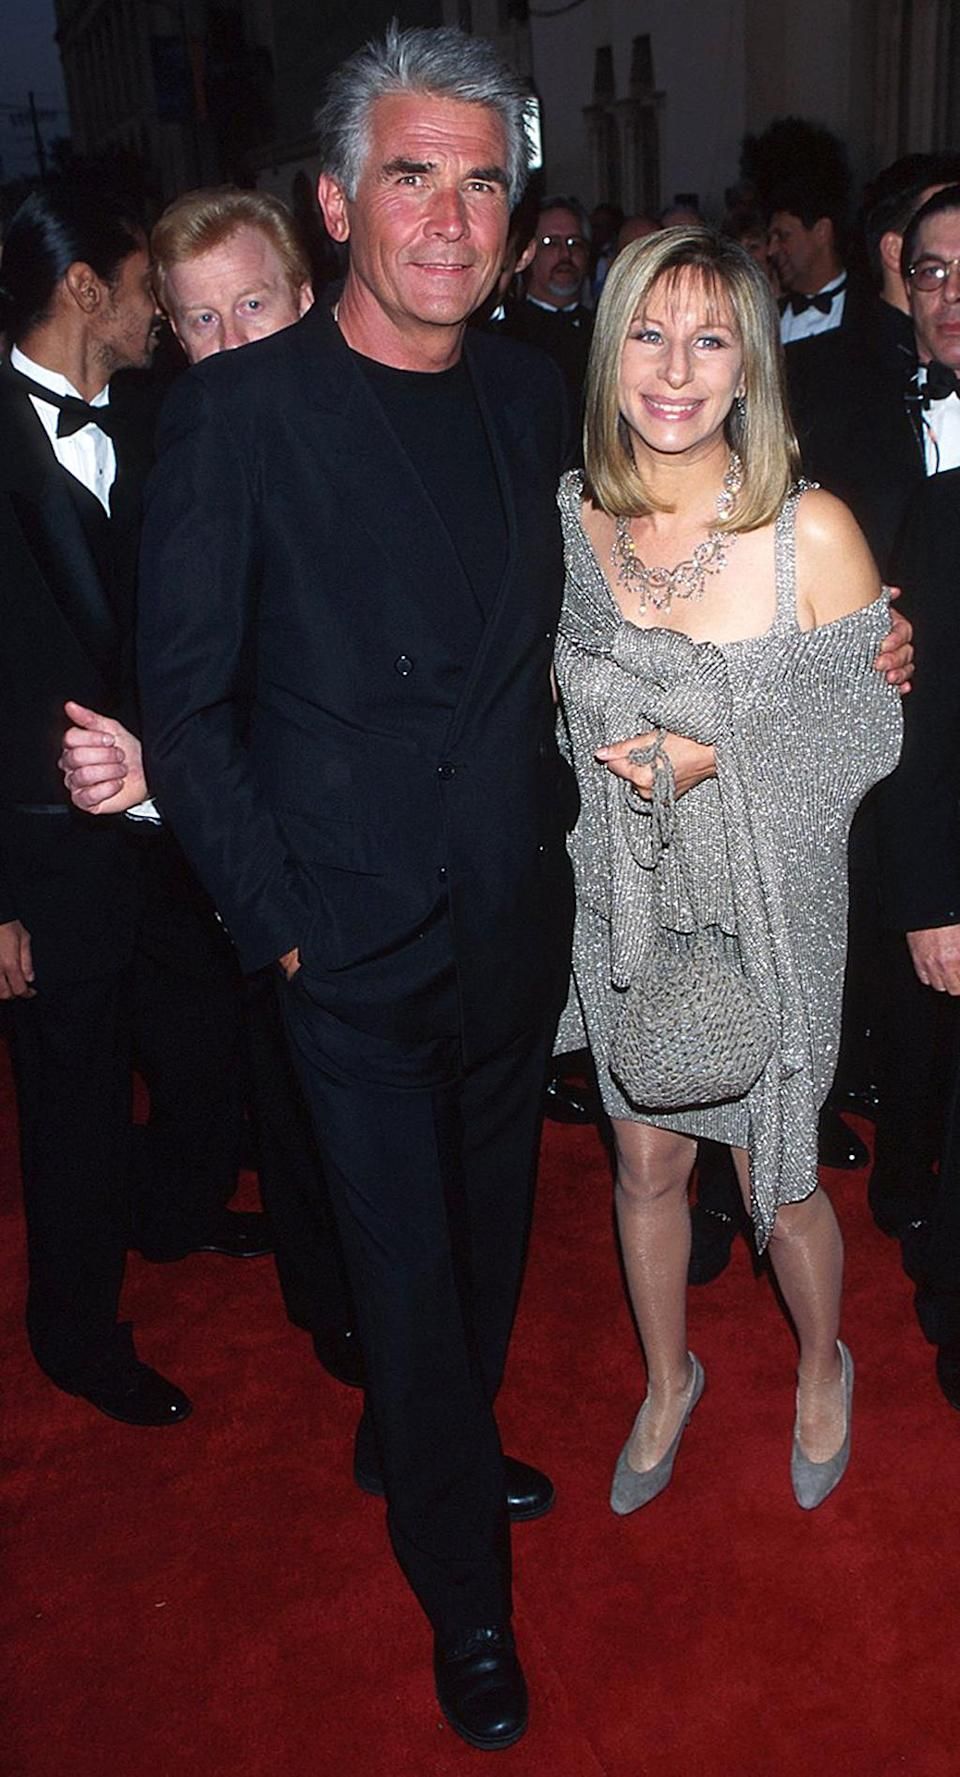 <p>Although nominated for Best Original Song from 'The Mirror Has Two Faces,' Streisand declined to sing for the live show. (Photo: Kevin Mazur/WireImage) </p>